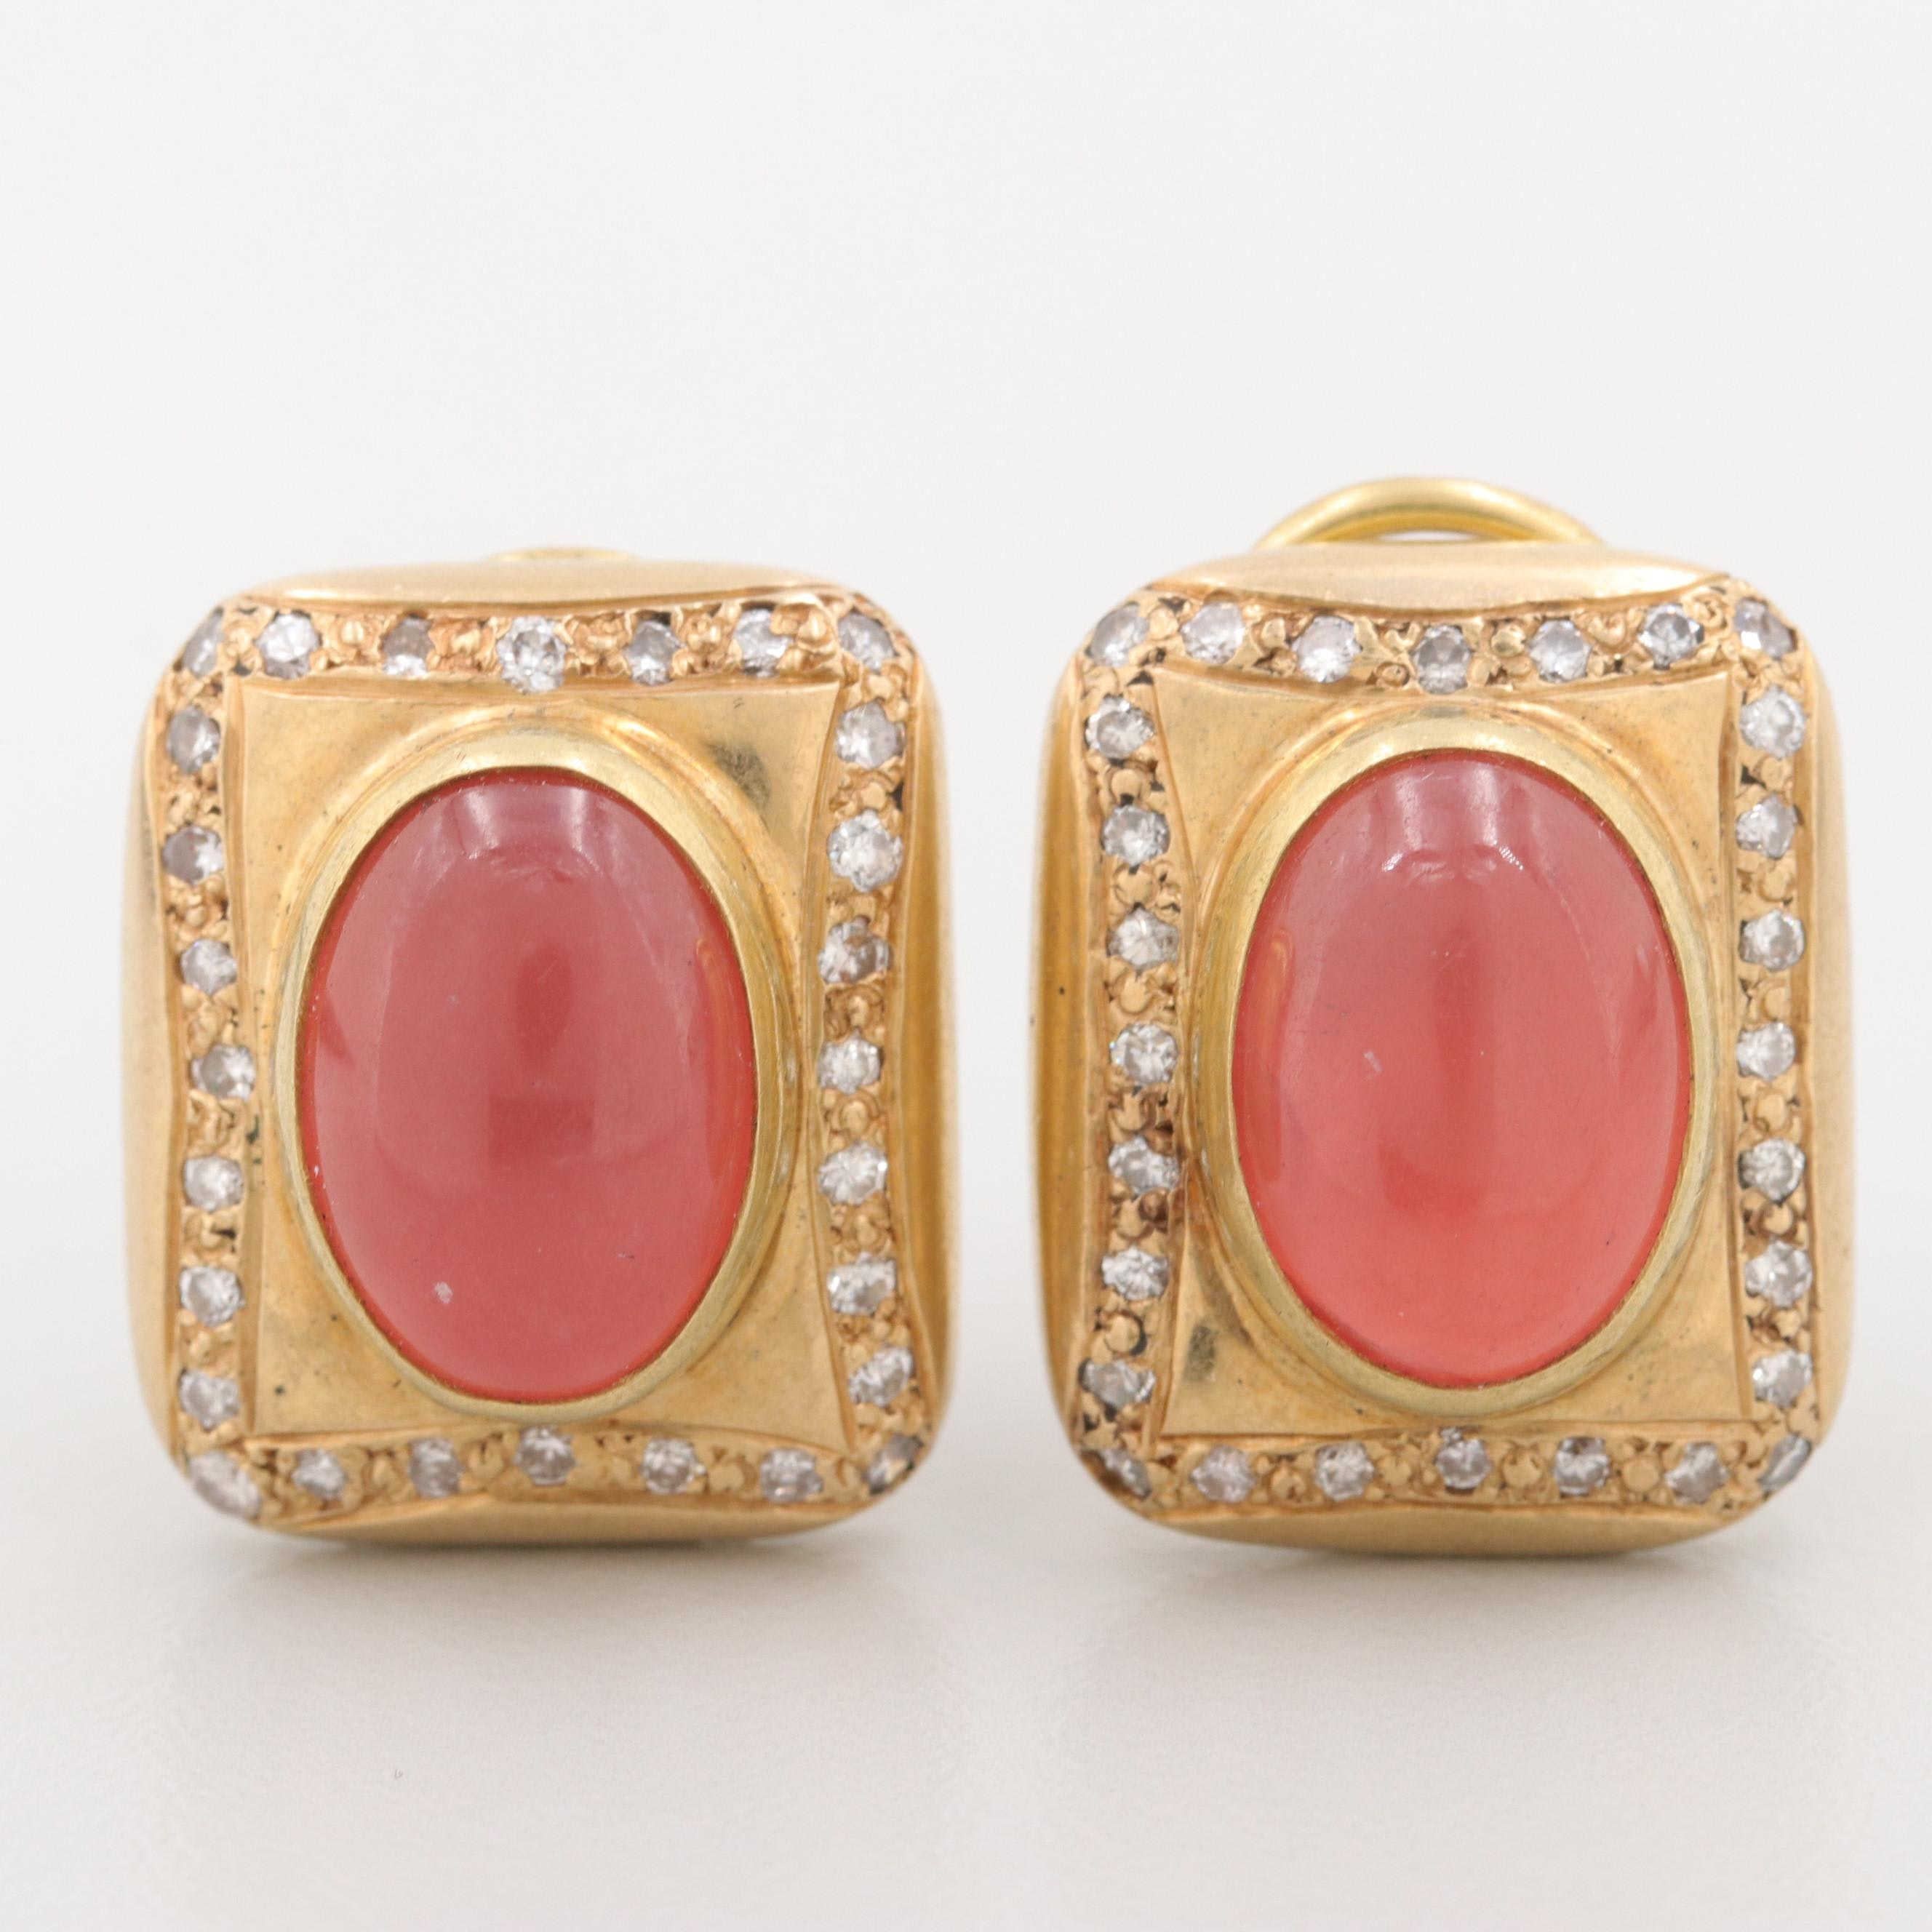 Vintage 18K Gold Single Crystal Rhodochrosite and 1.12 CTW Diamond Earrings